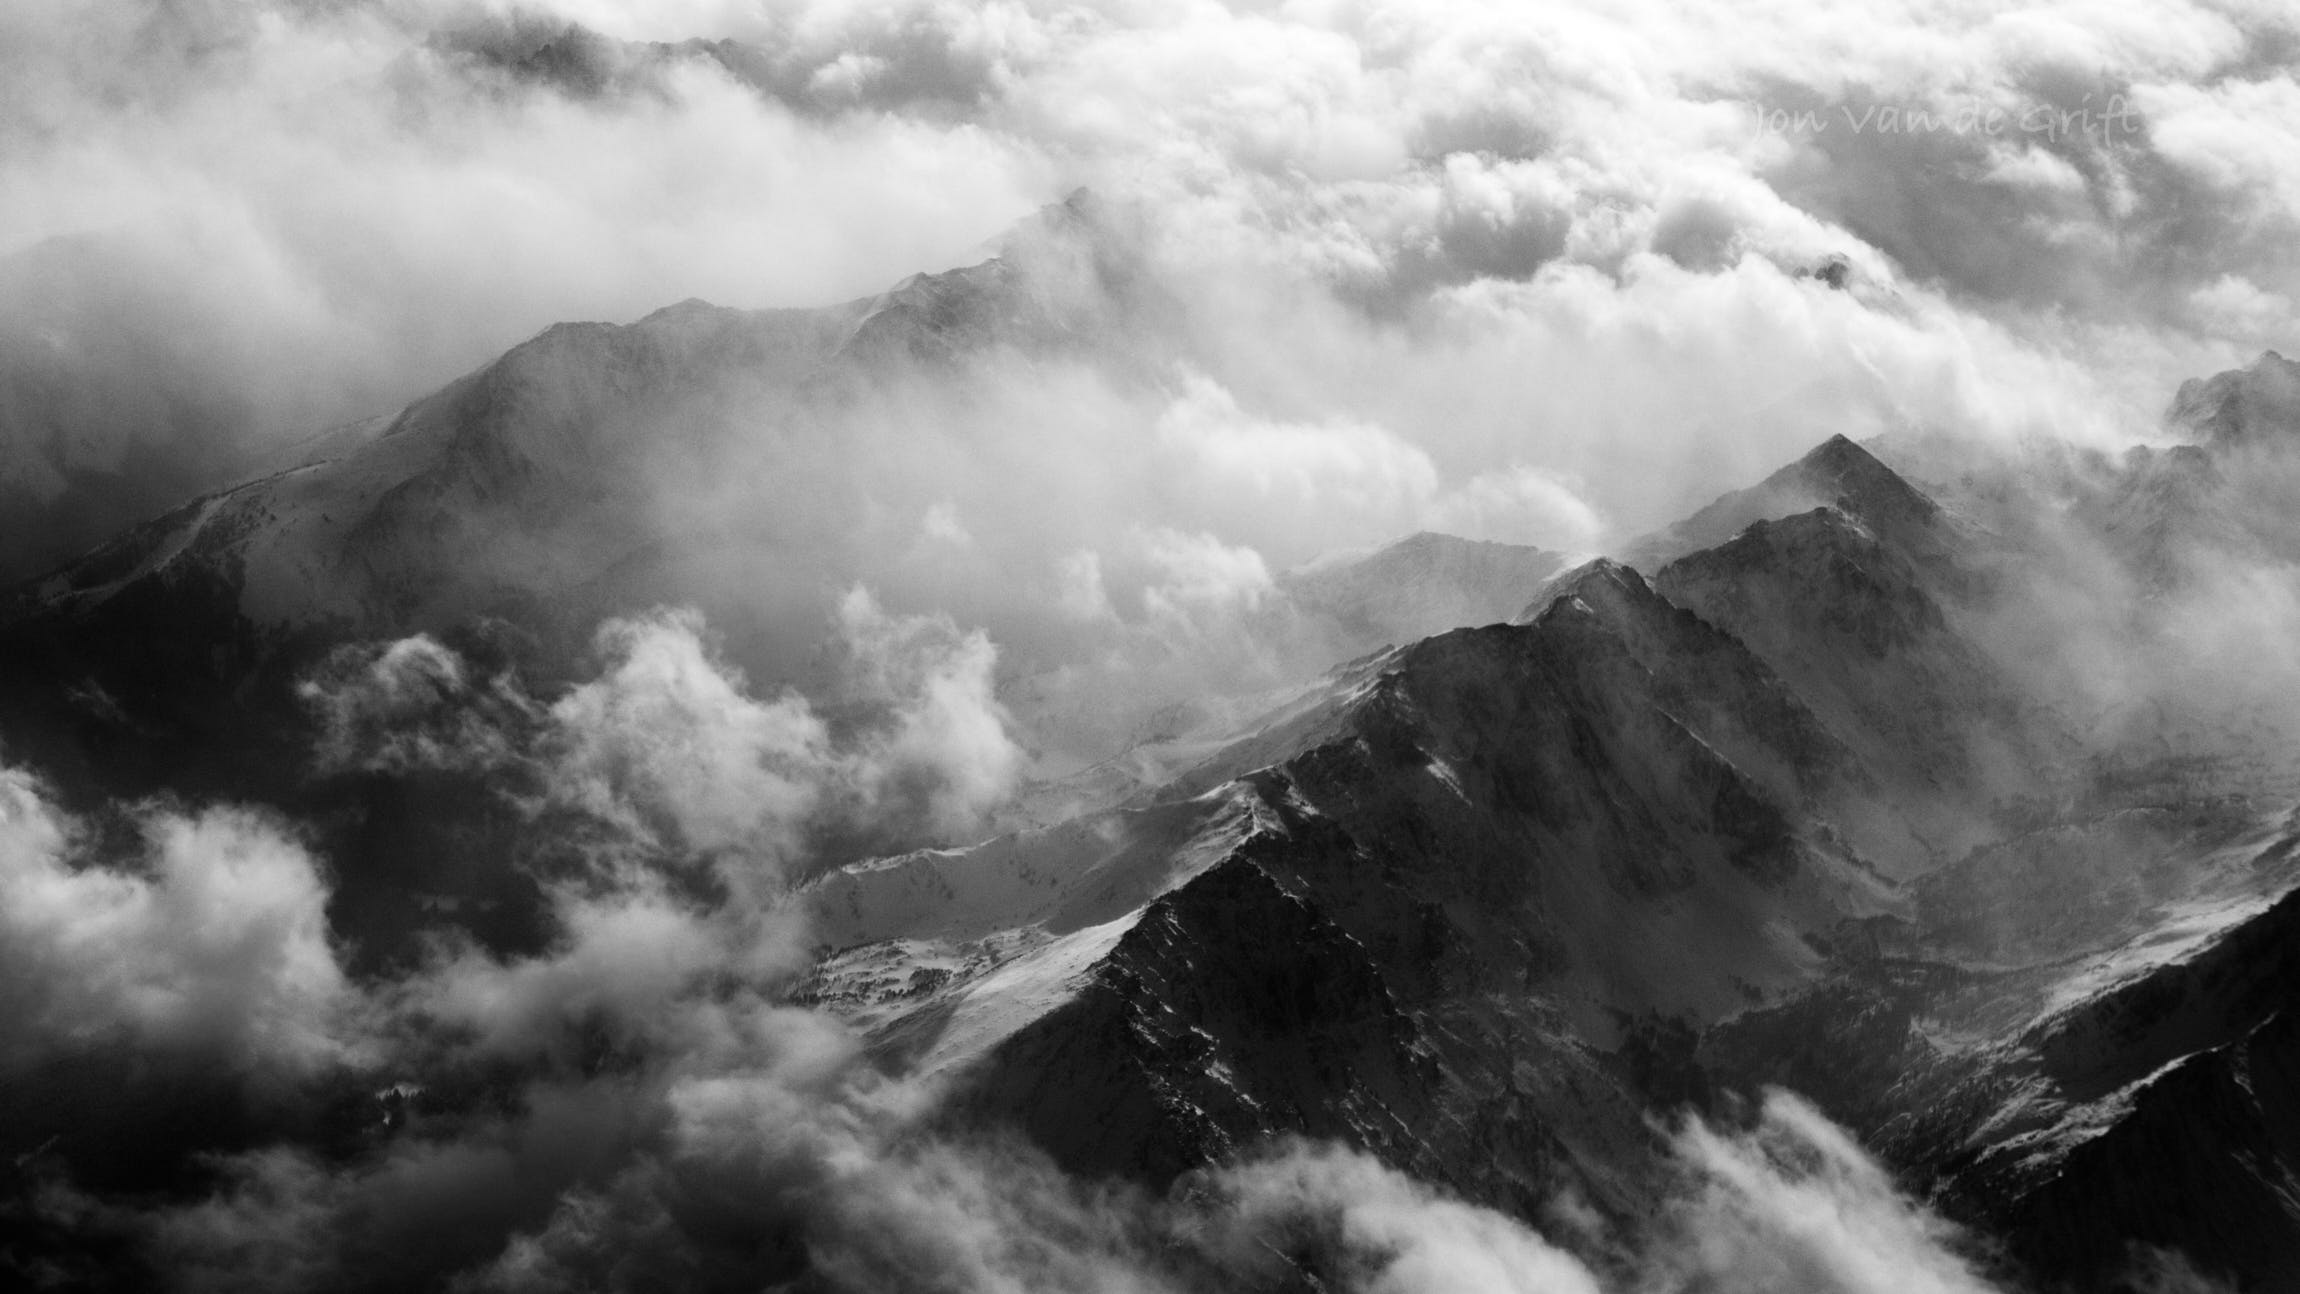 Monochrome aerial photograph of a winter storm breaking over a mountain range